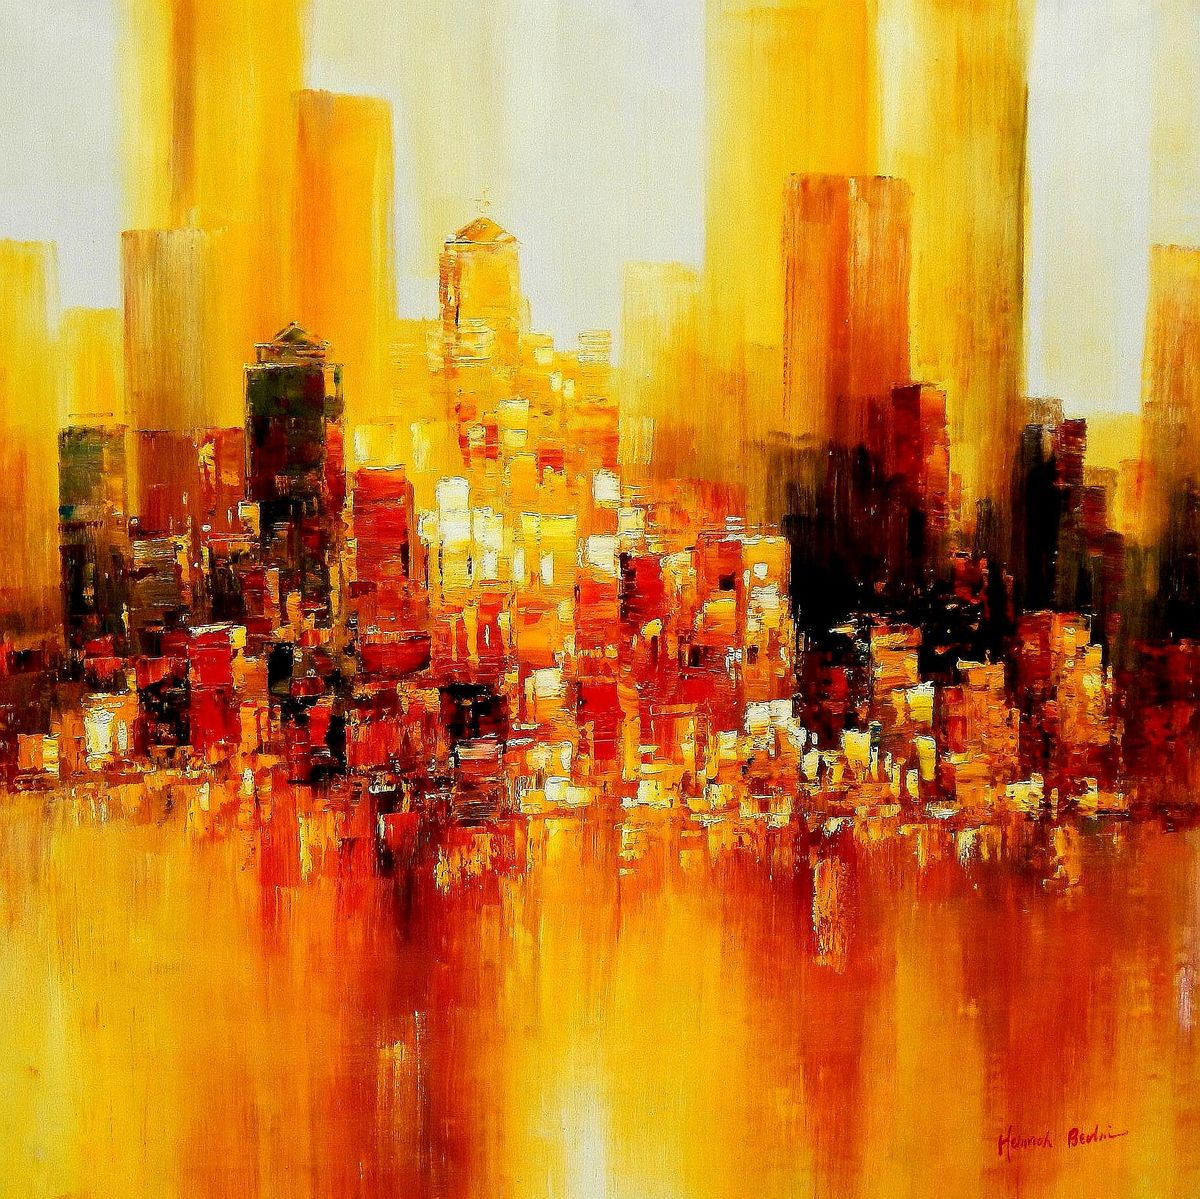 Abstrakt New York Manhattan Skyline im Herbst m94476 120x120cm abstraktes Ölbild